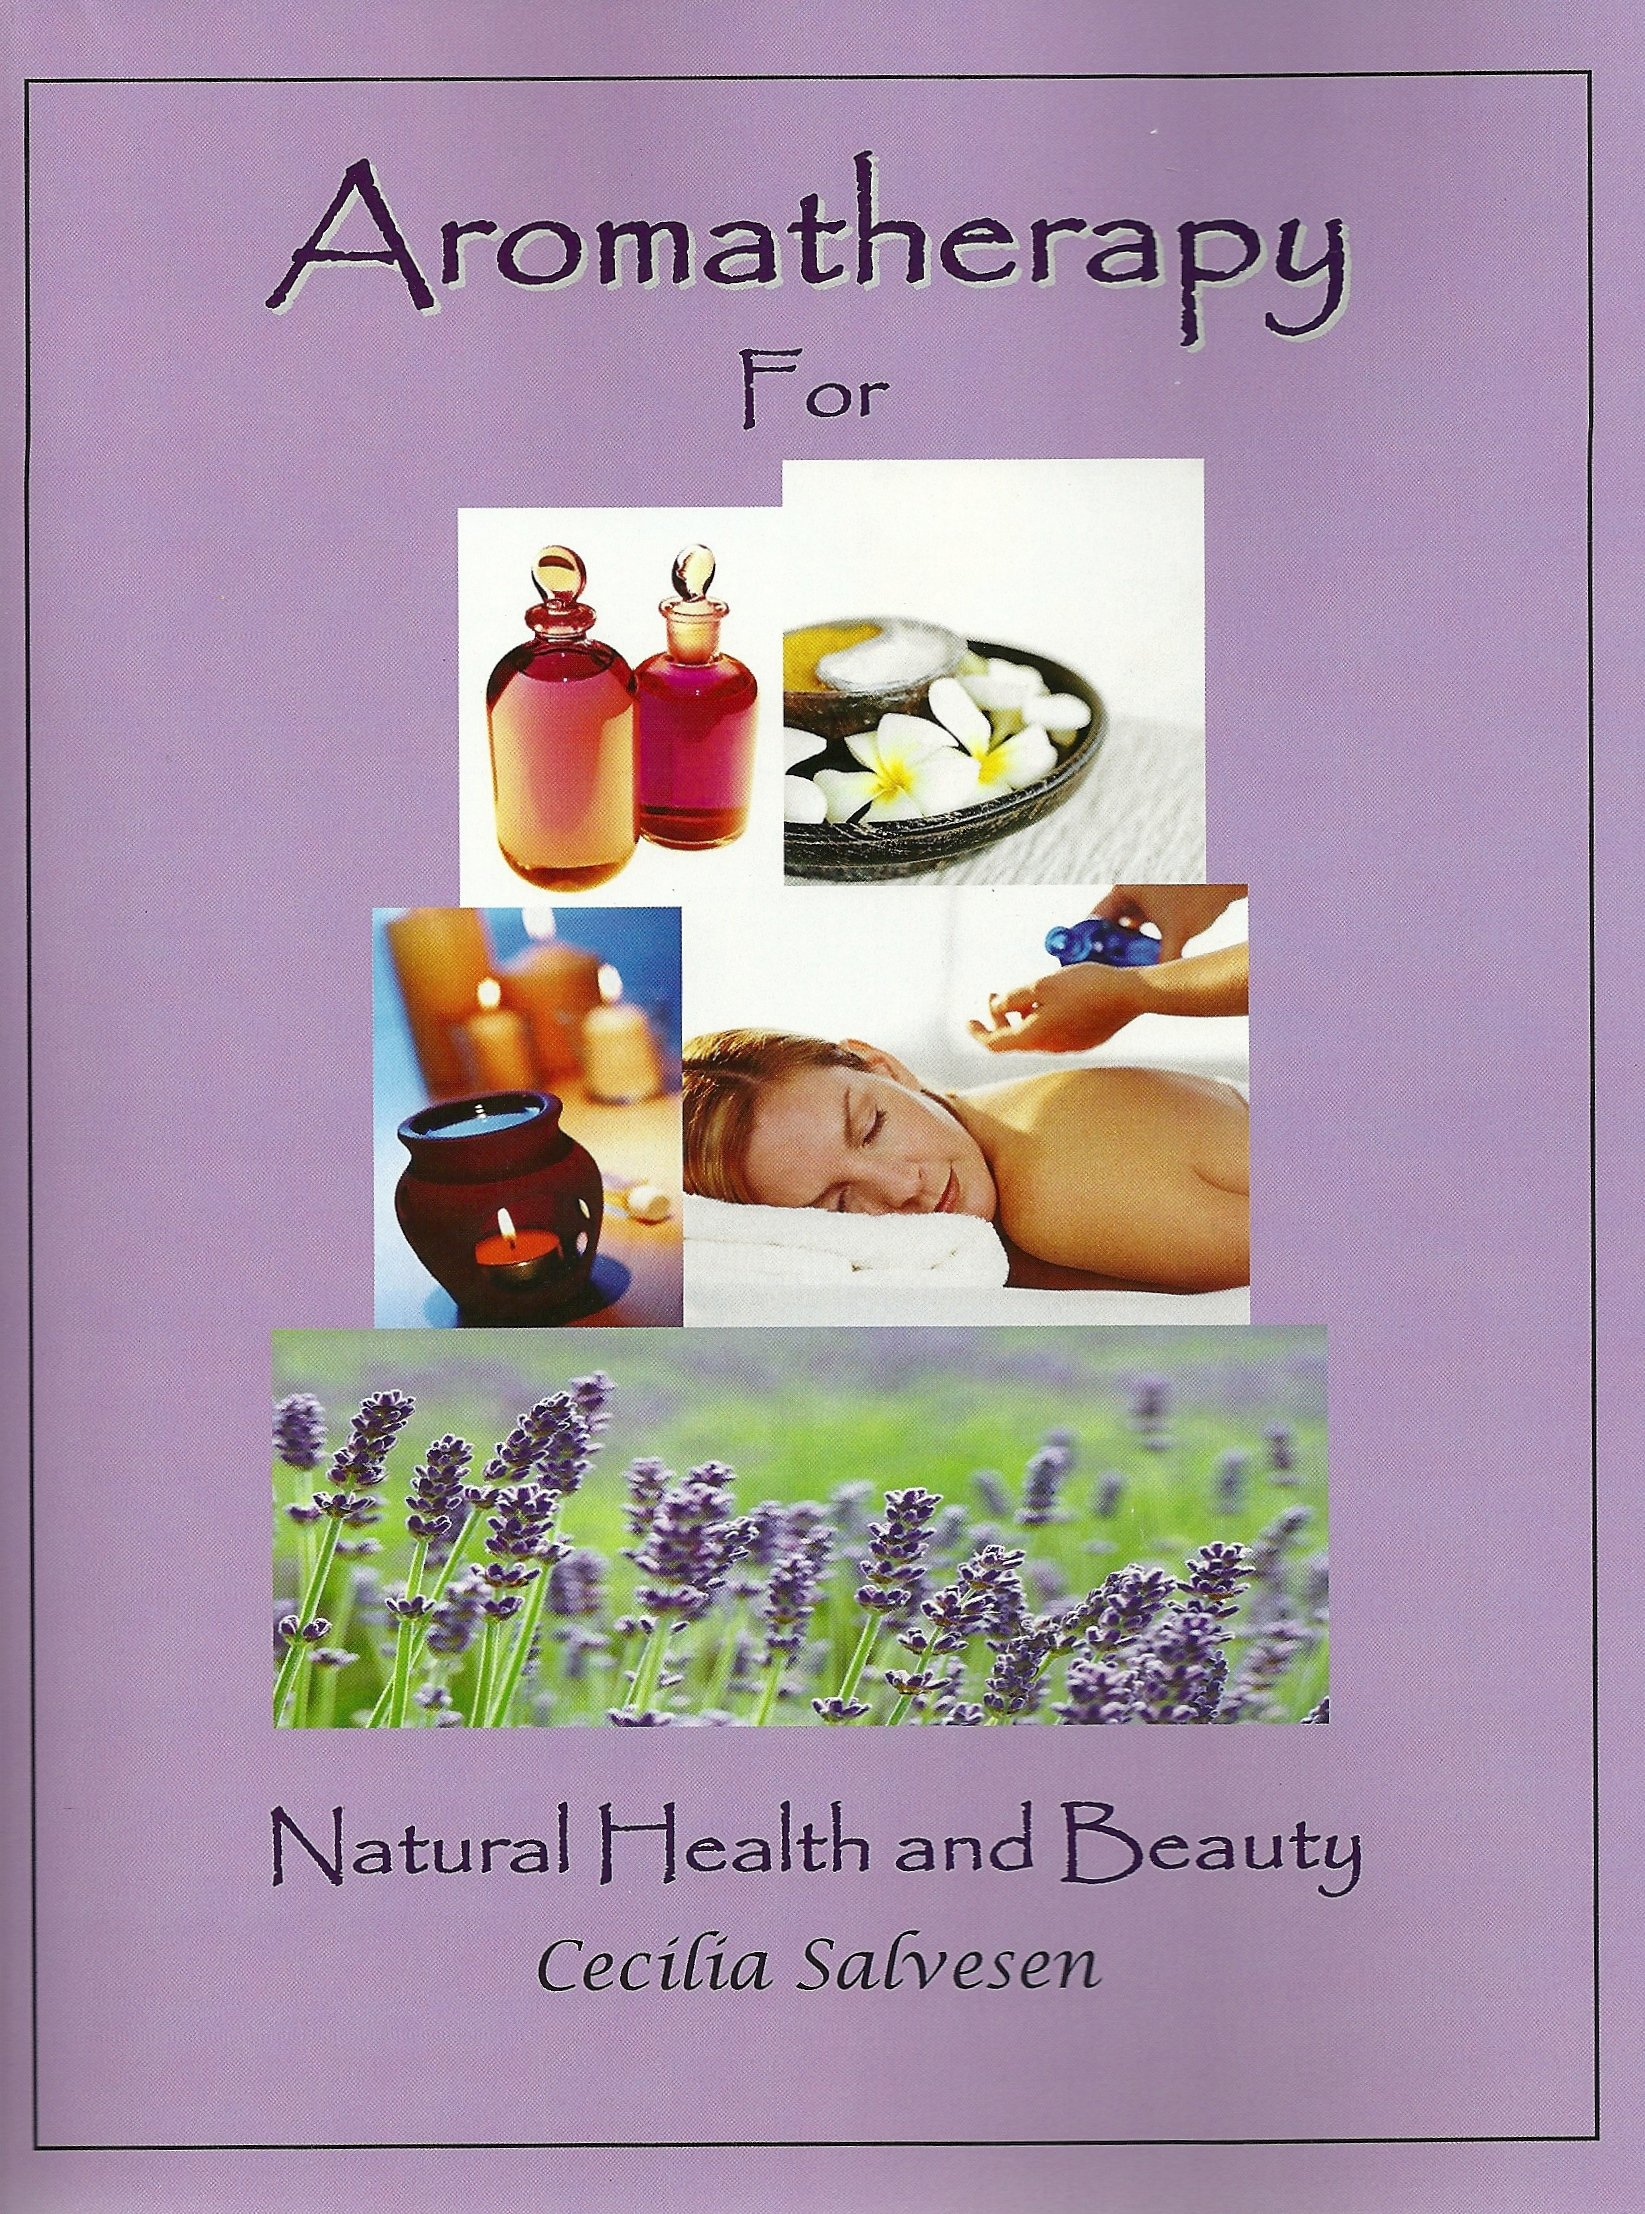 Aromatherapy for Natural Health and Beauty pdf